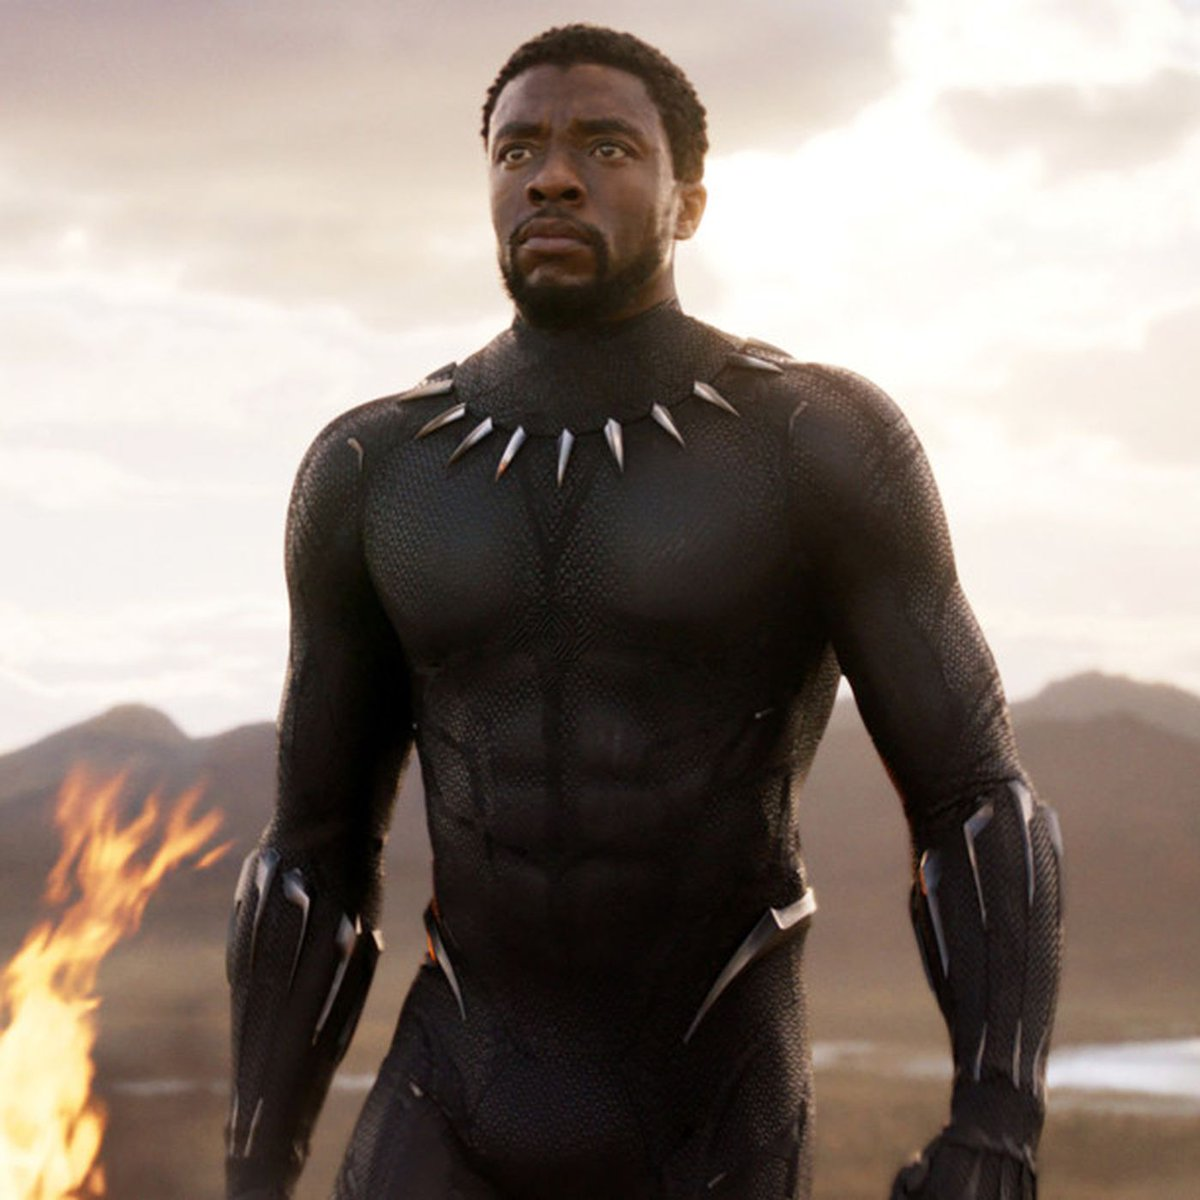 RT @Huepow00: for no particular reason today.  Can we acknowledge just how amazing Chadwick Boseman was? https://t.co/5YEP1Xt7Gh